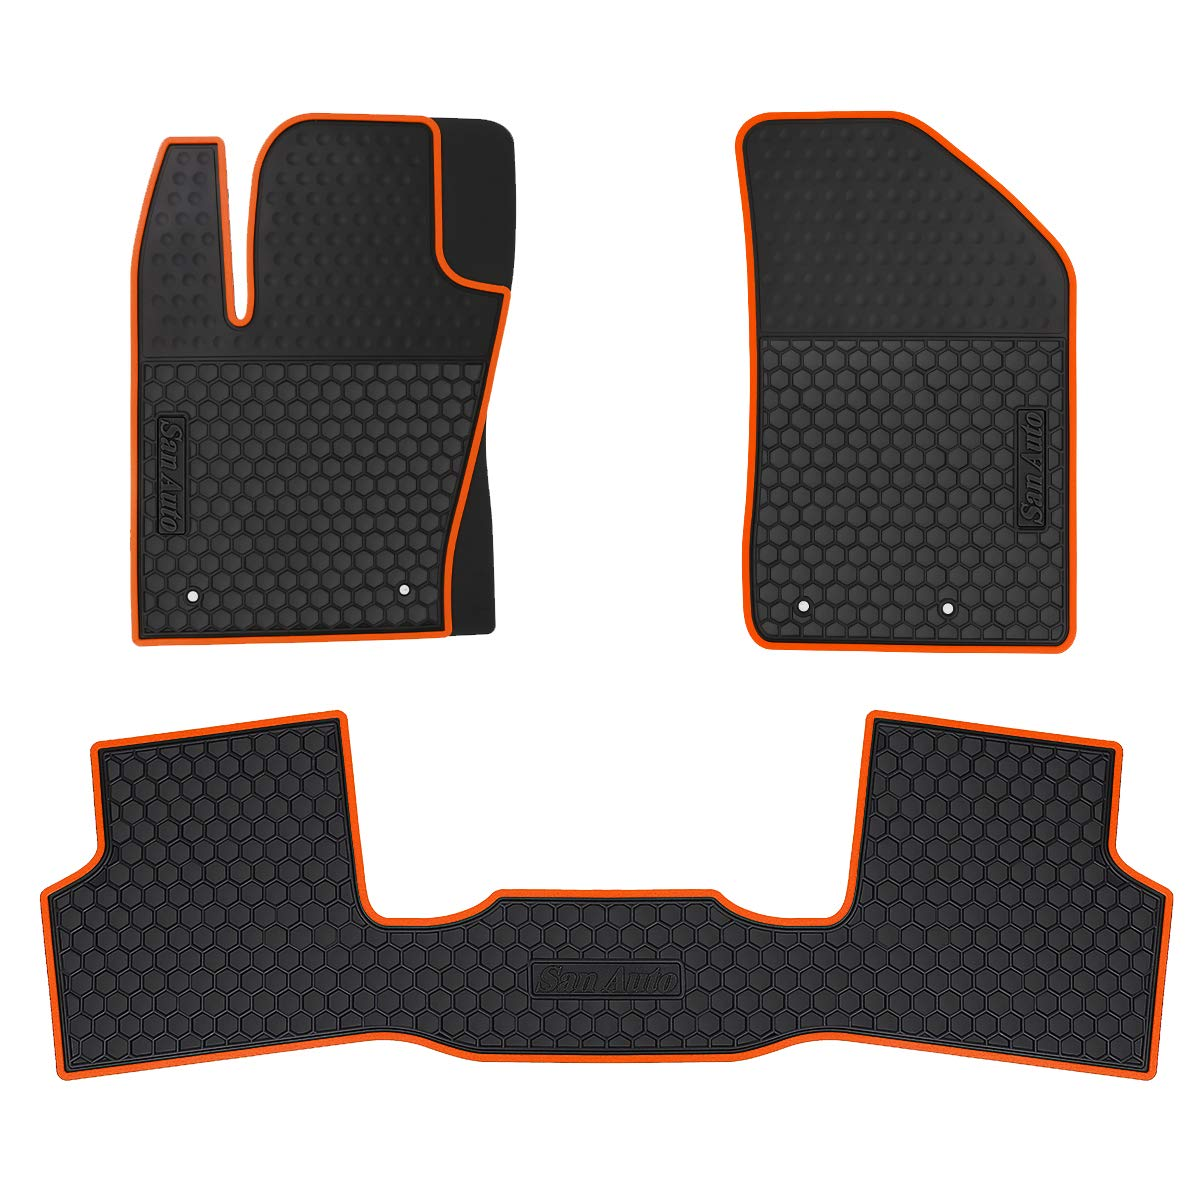 HD-Mart Car Floor Mats for Jeep Renegade 2015 2016 2017 2018 2019 2020 2021 Custom Fit Black Orange Rubber Car Floor Liners Set All Weather Protection Heavy Duty Odorless